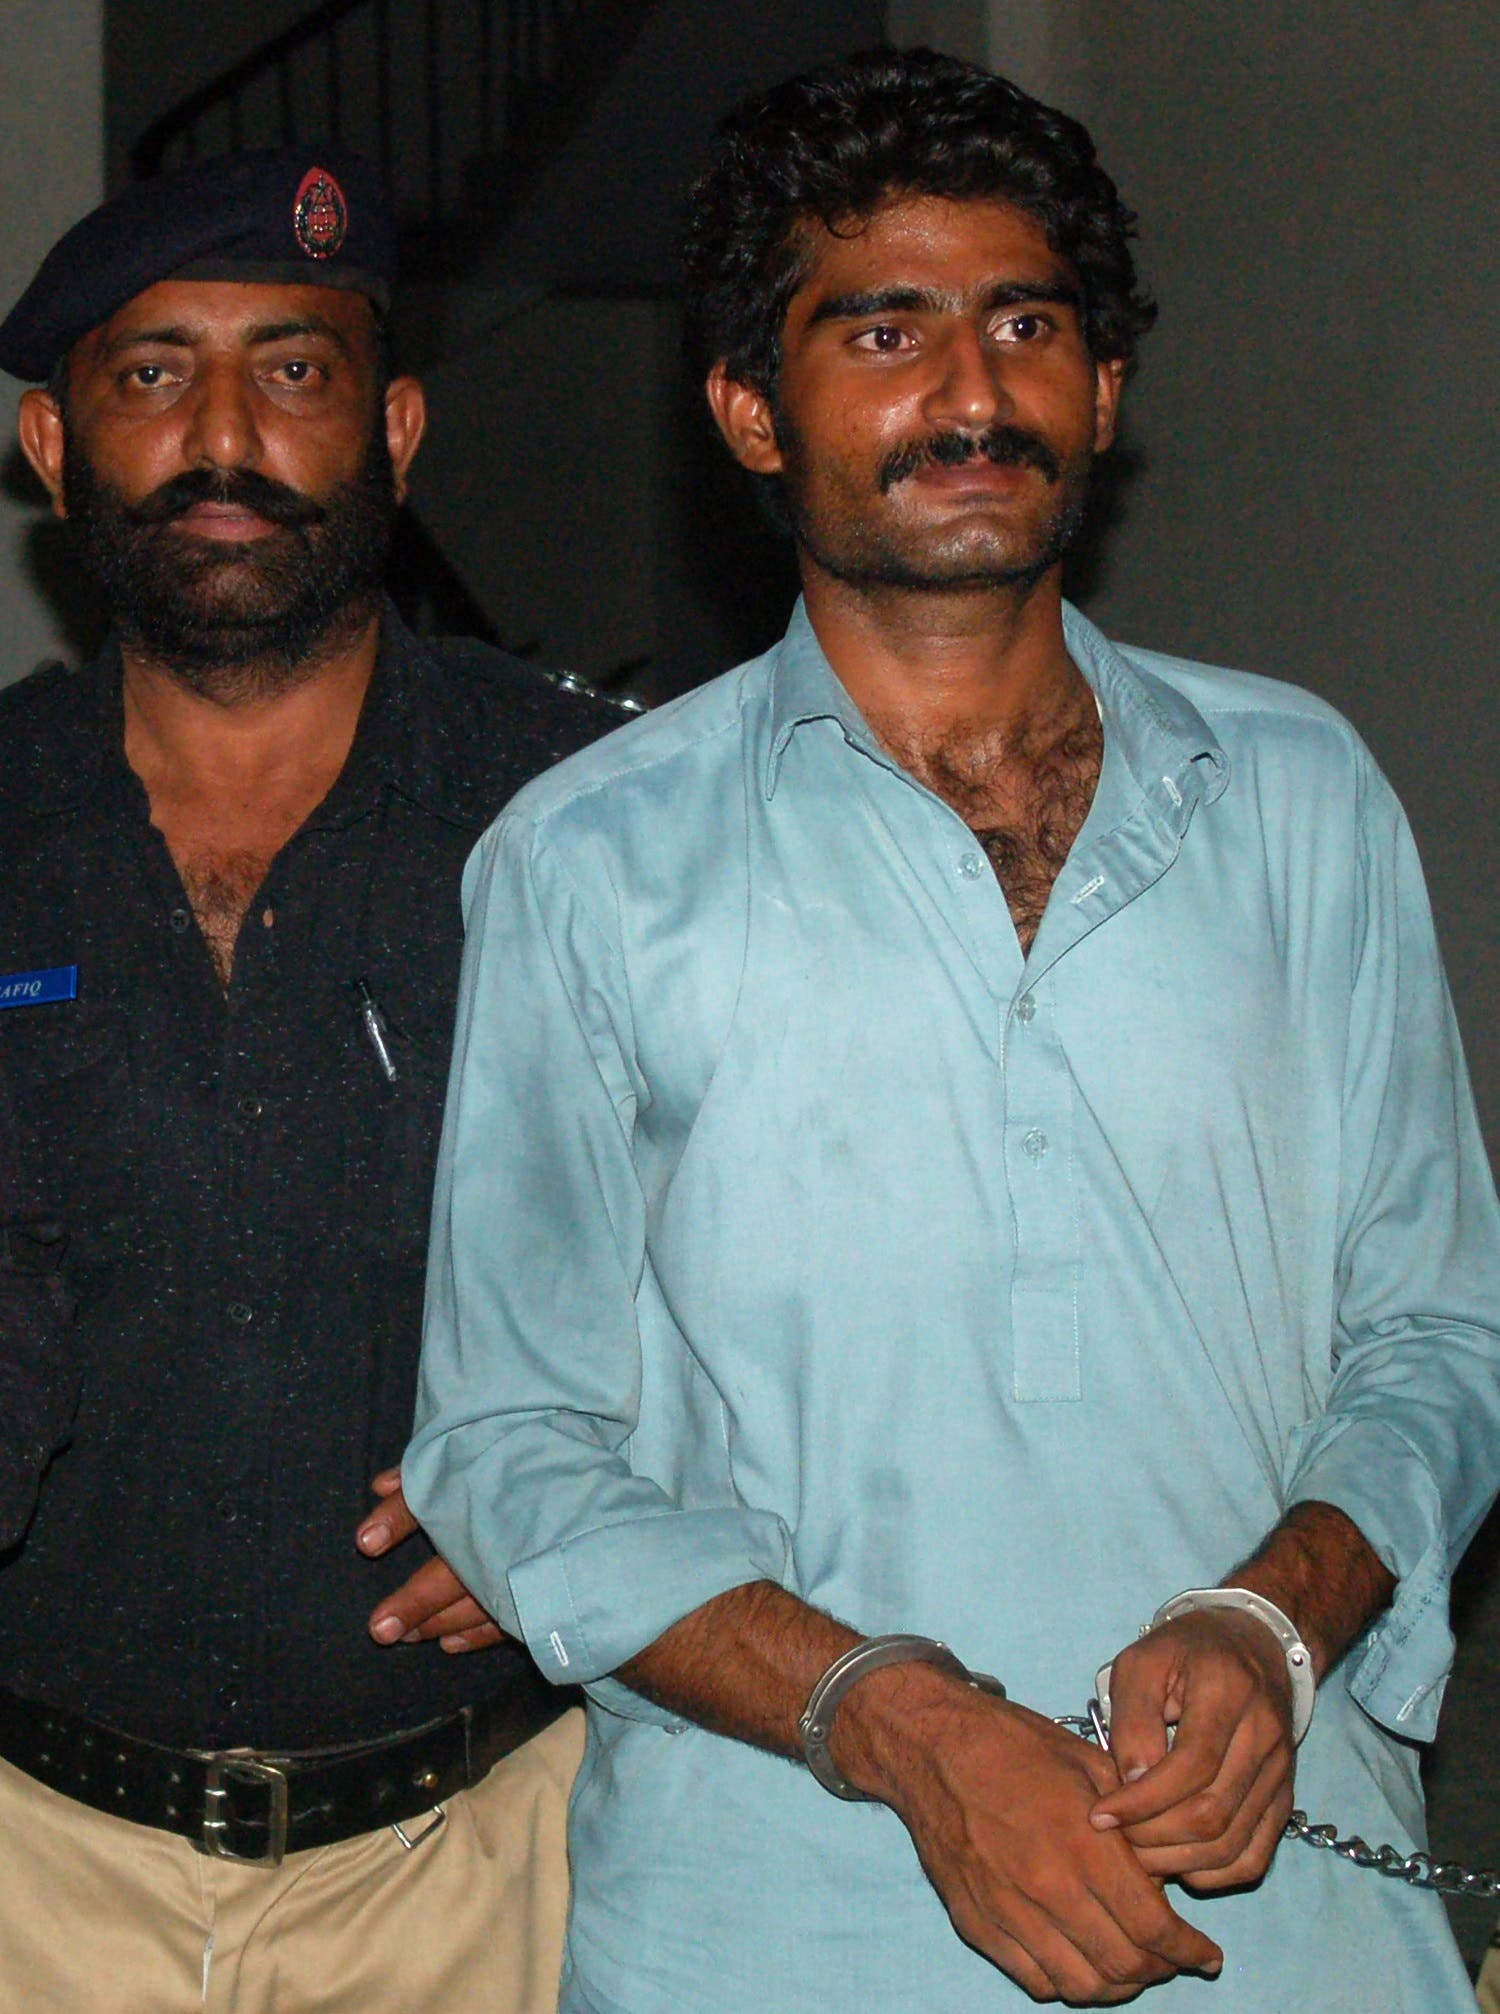 Wasim (R), the brother of slain social media celebrity Qandeel Baloch, is escorted by police following his arrest for Qandeel's death in Multan. (AFP)